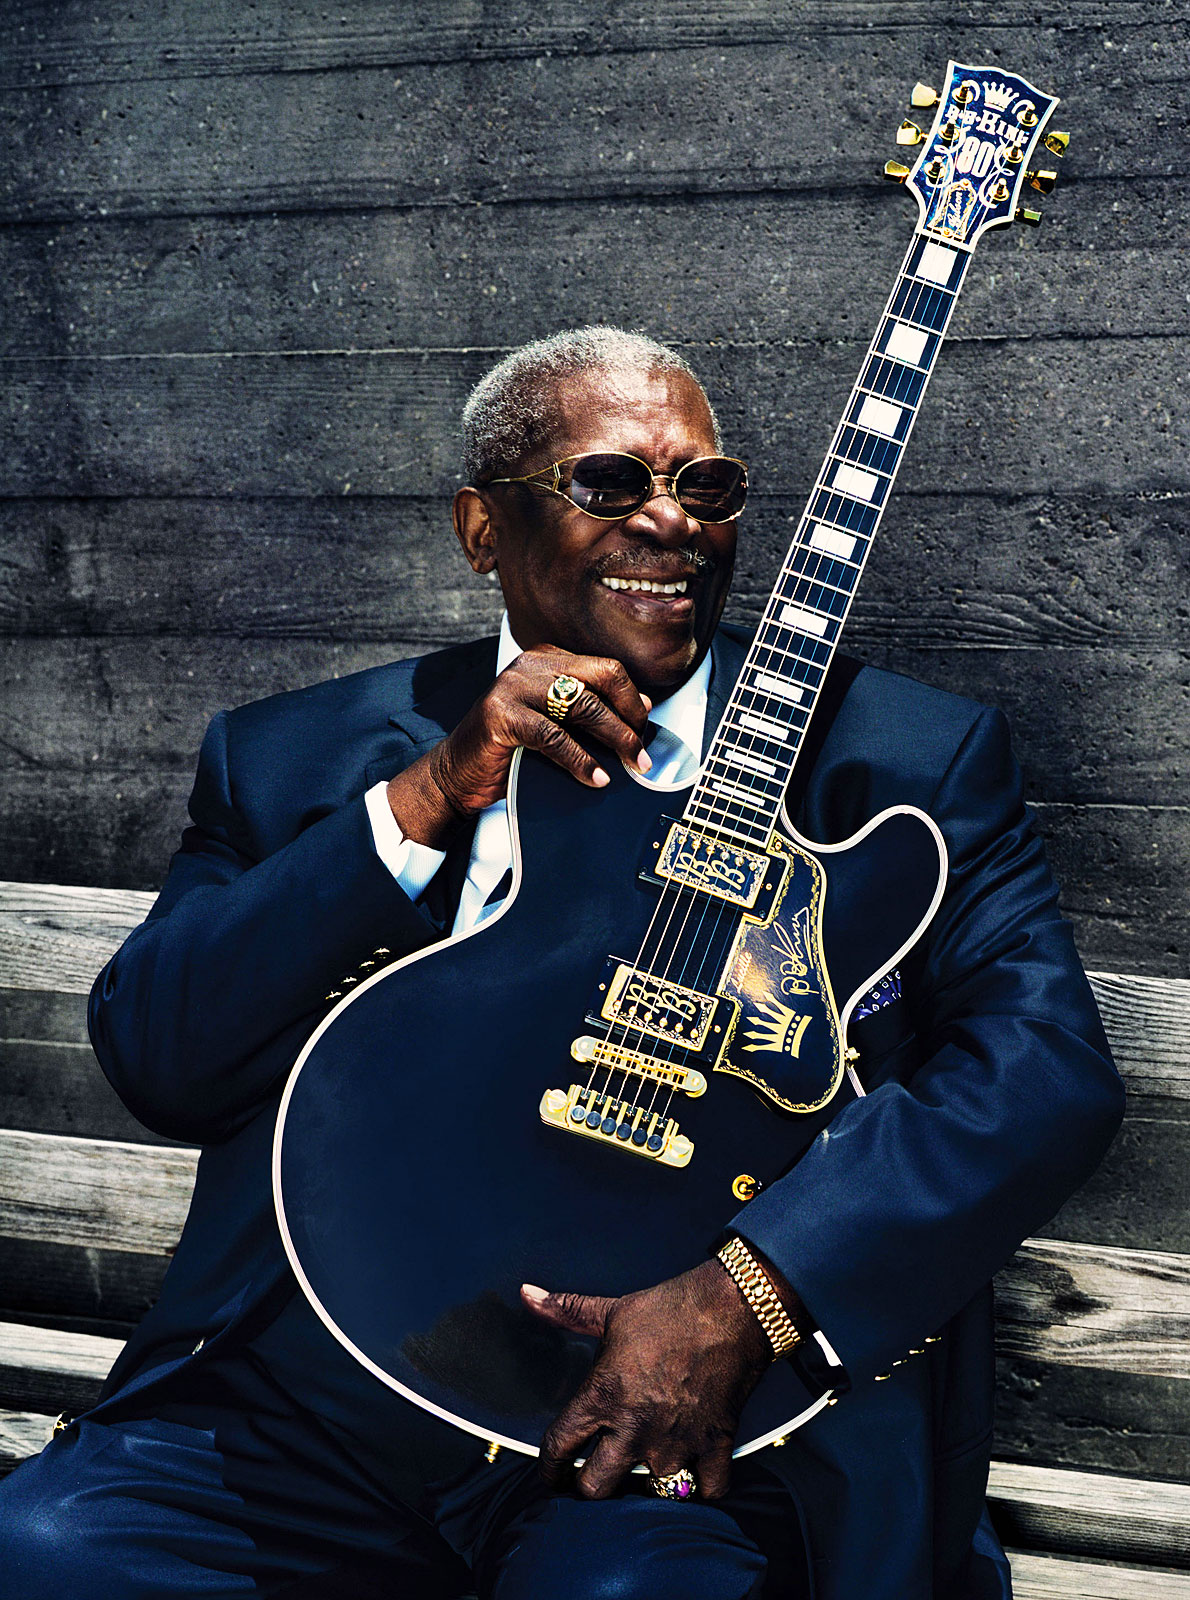 http://www.nytimes.com/2015/05/16/arts/music/b-b-king-blues-singer-dies-at-89.html